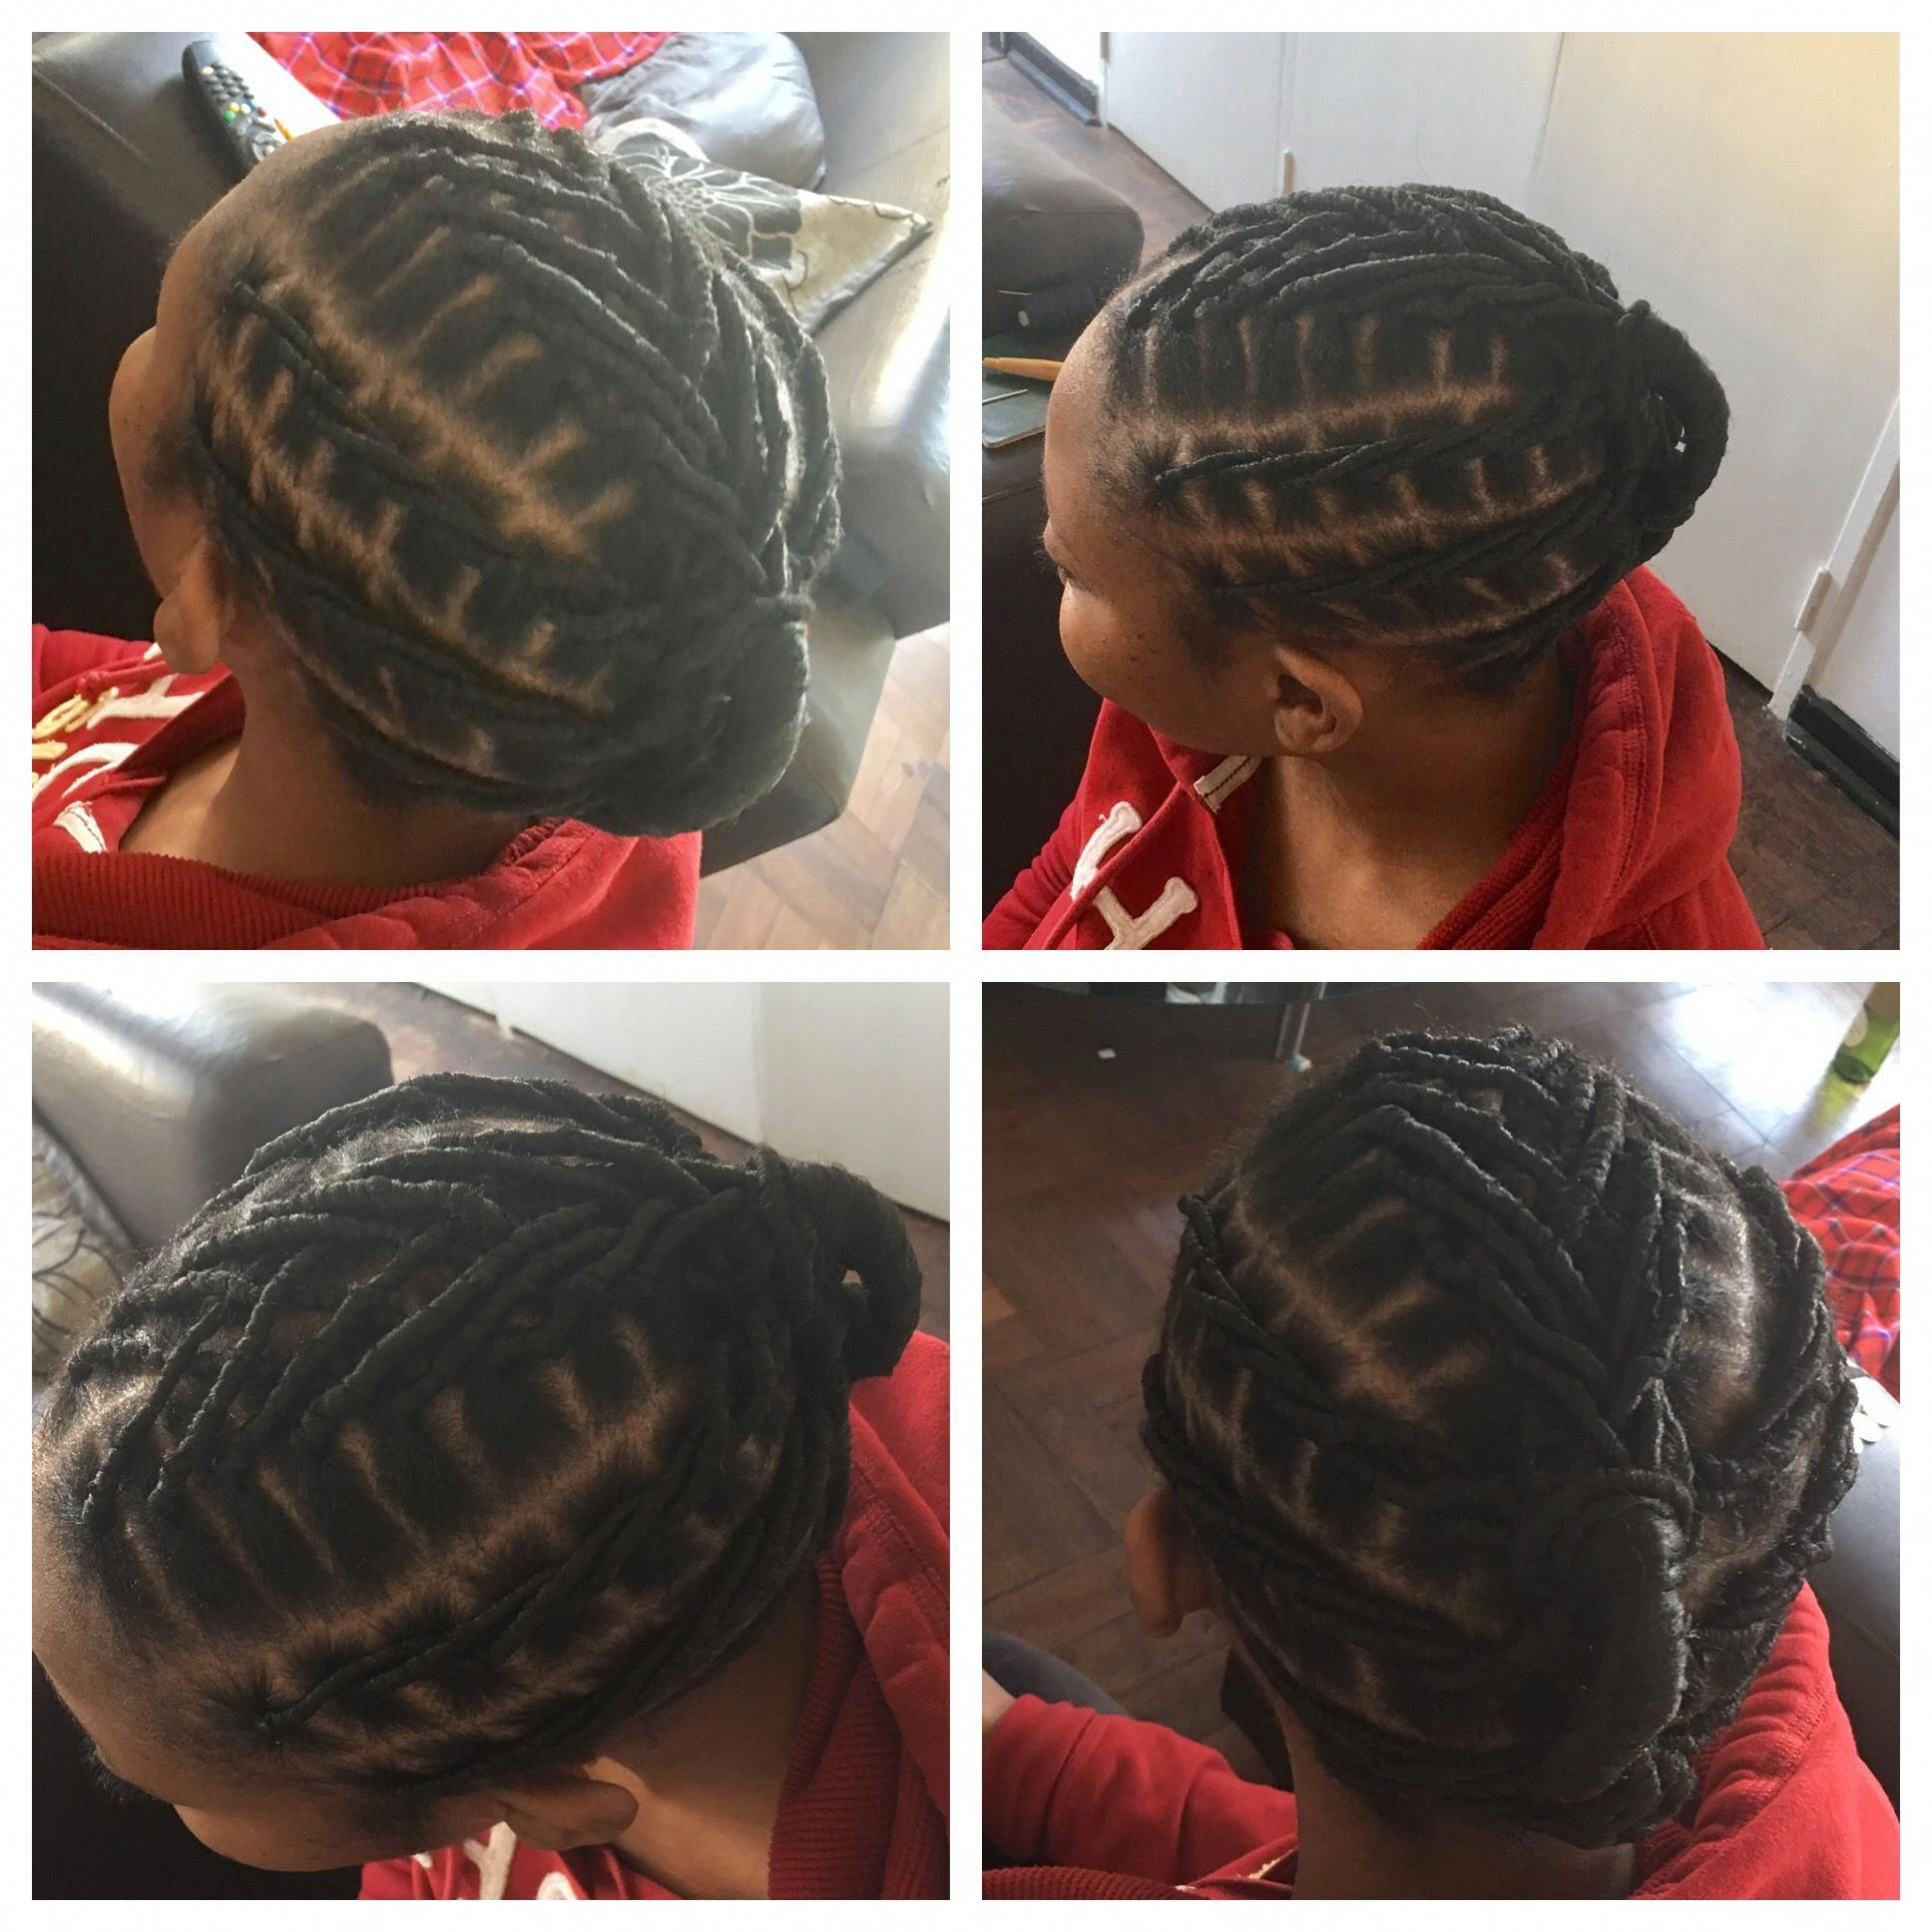 Mabhanzi Brazilian Wool African Threading Style Africanhairstyles Natural Hair Styles For Black Women Natural Afro Hairstyles African Hairstyles African threading hairstyle lolade fashola. natural hair styles